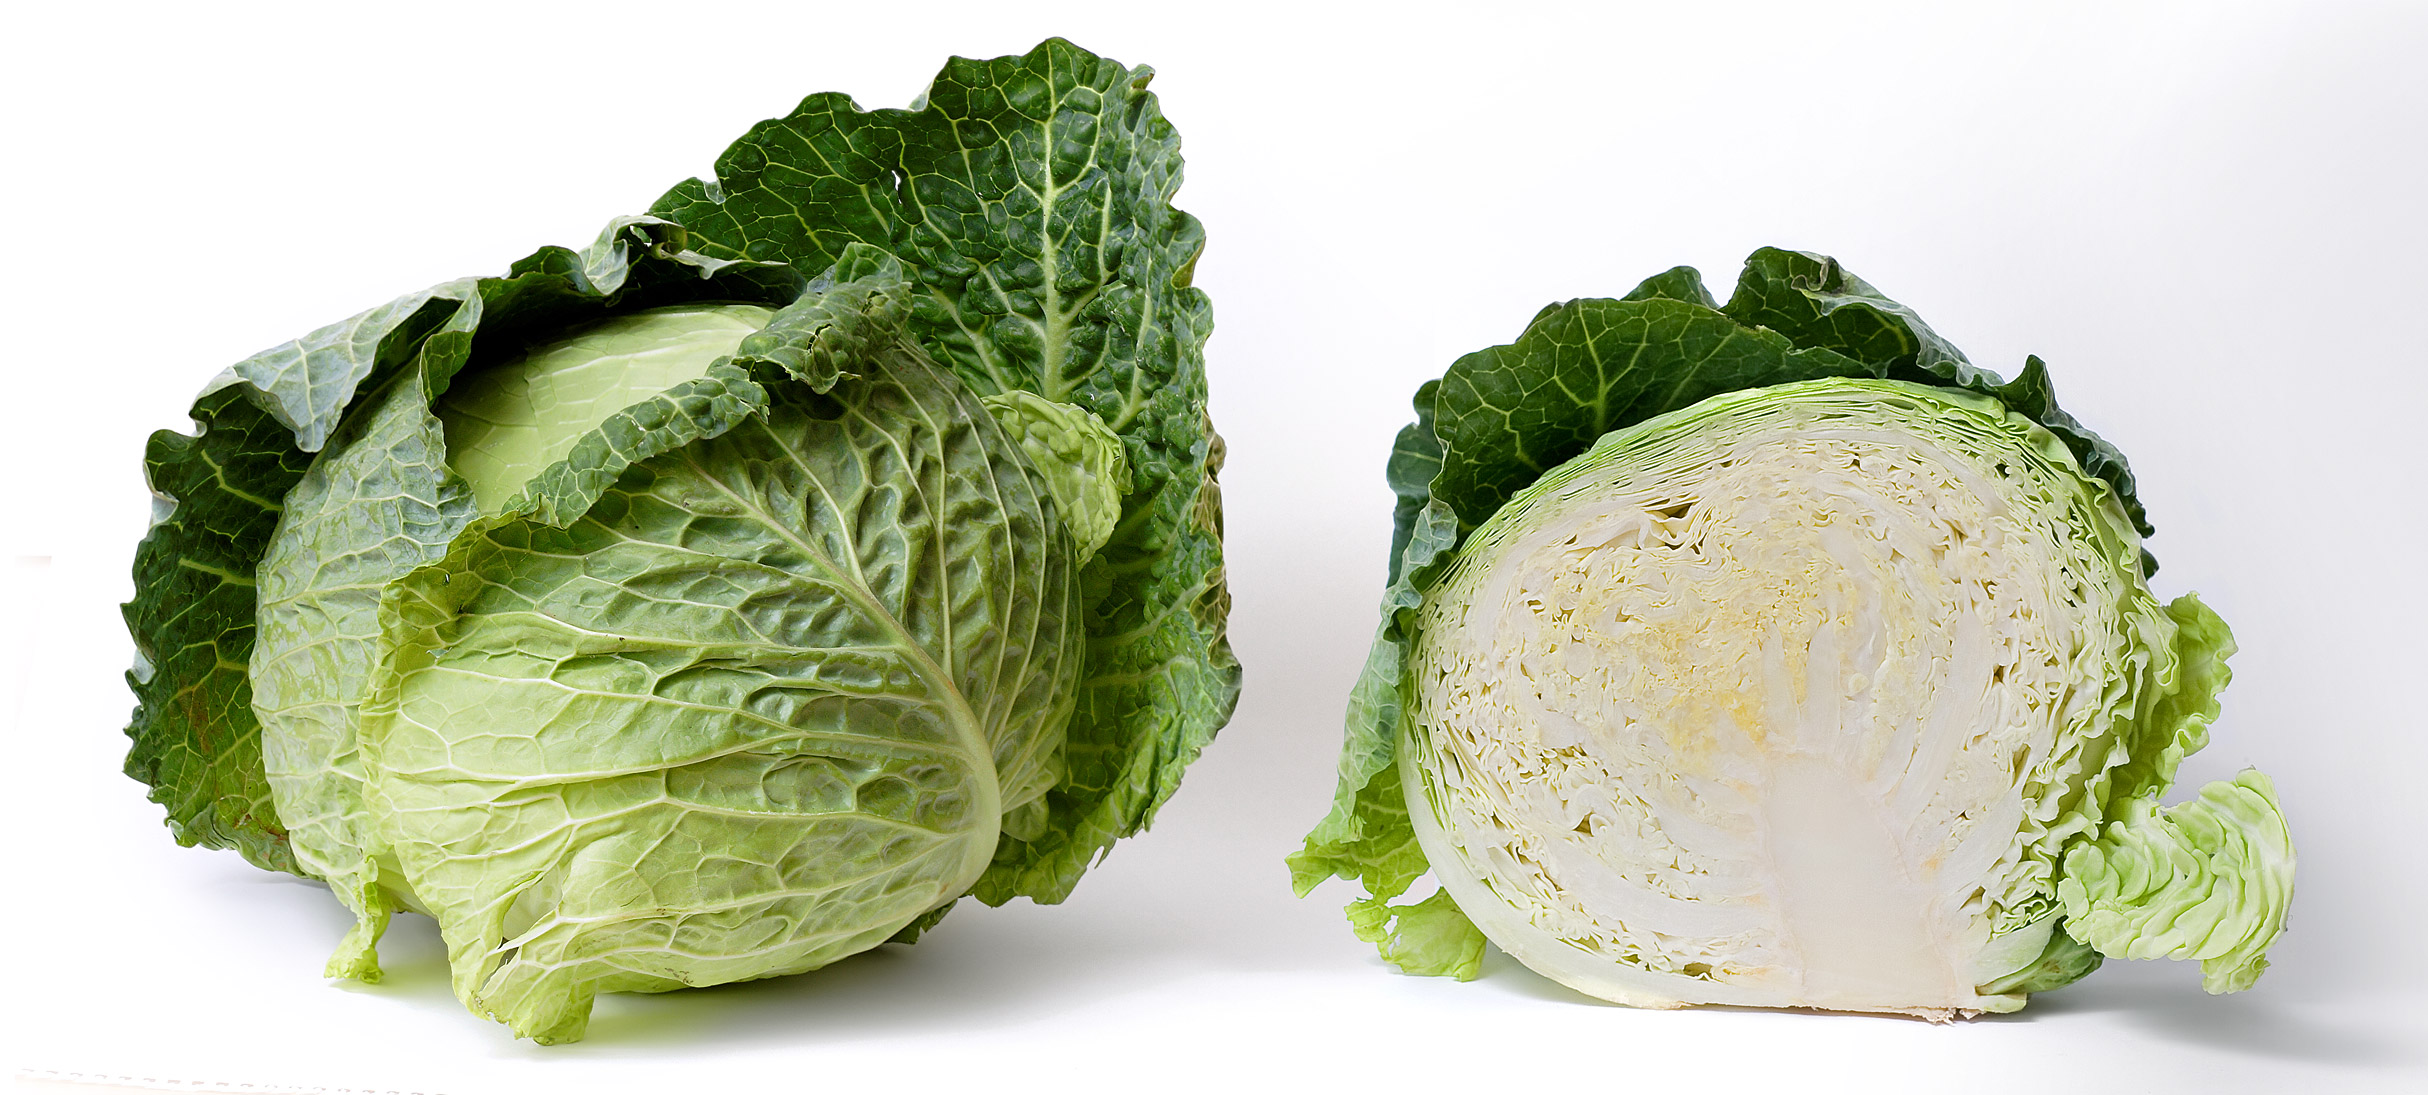 Cabbage - Wikipedia